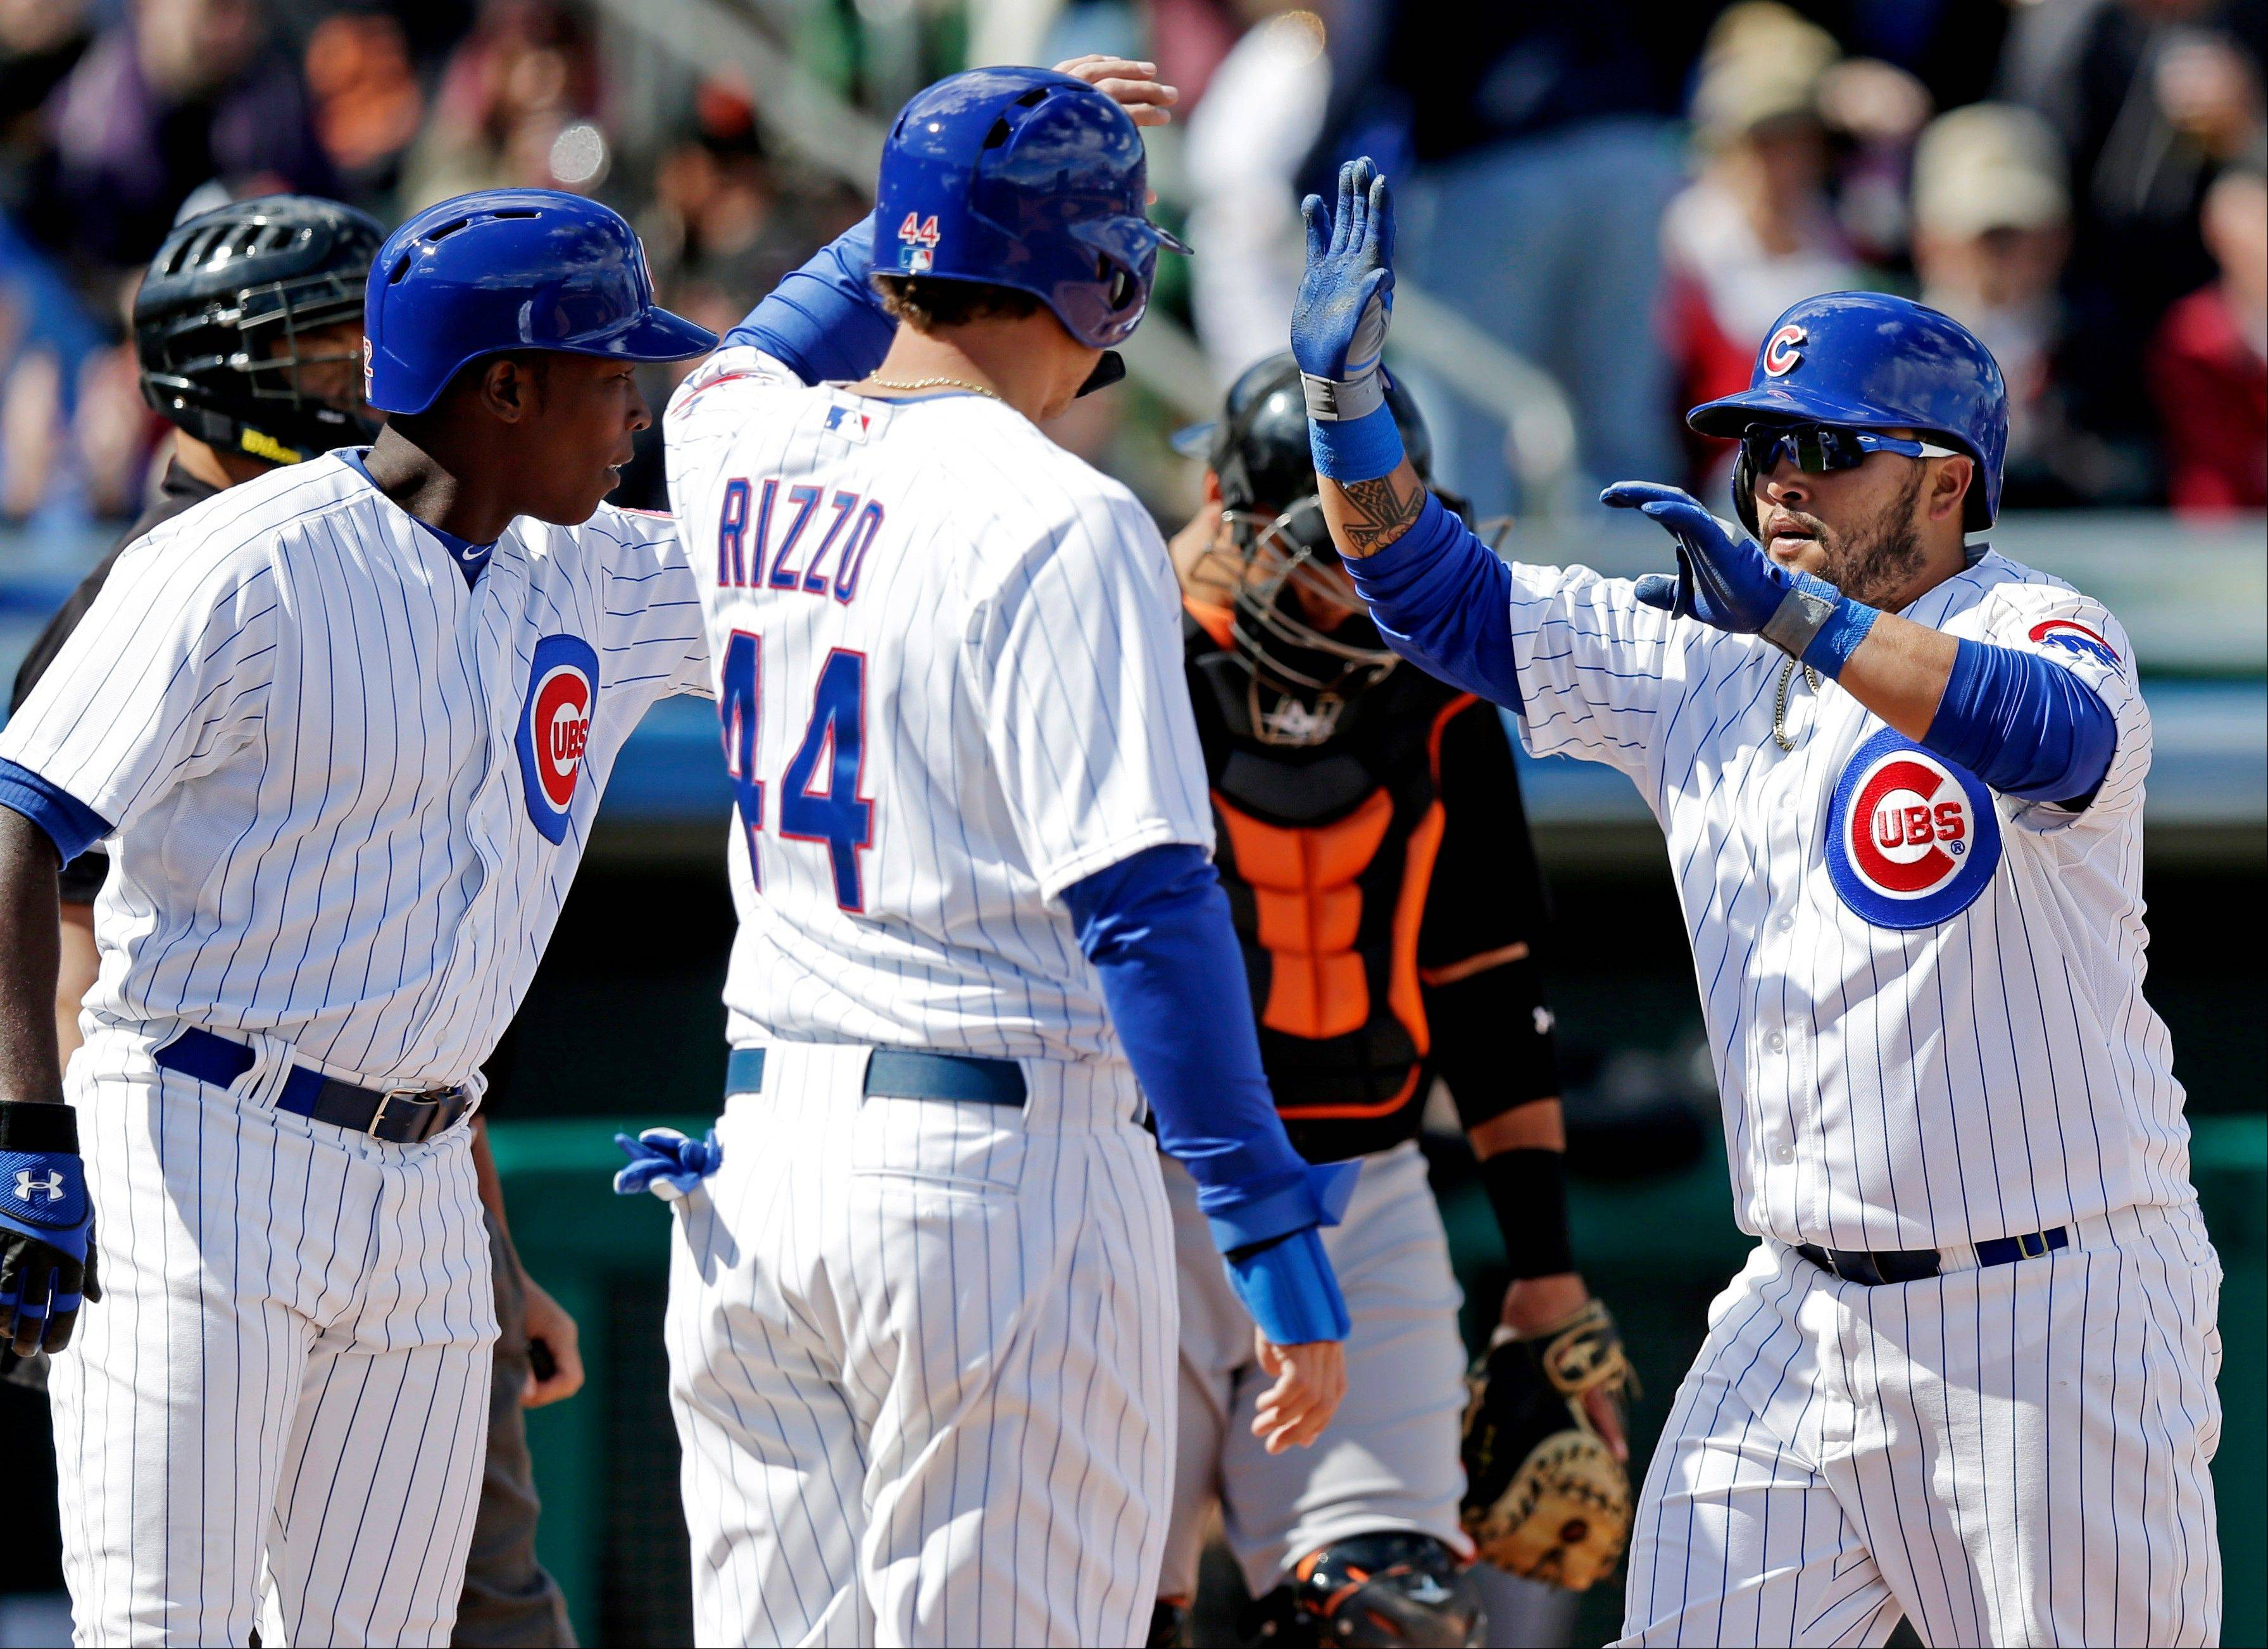 Chicago Cubs' Dioner Navarro, right, is congratulated by Anthony Rizzo (44) and Alfonso Soriano after hitting a three-run home run during an exhibition game against the San Francisco Giants on Sunday.